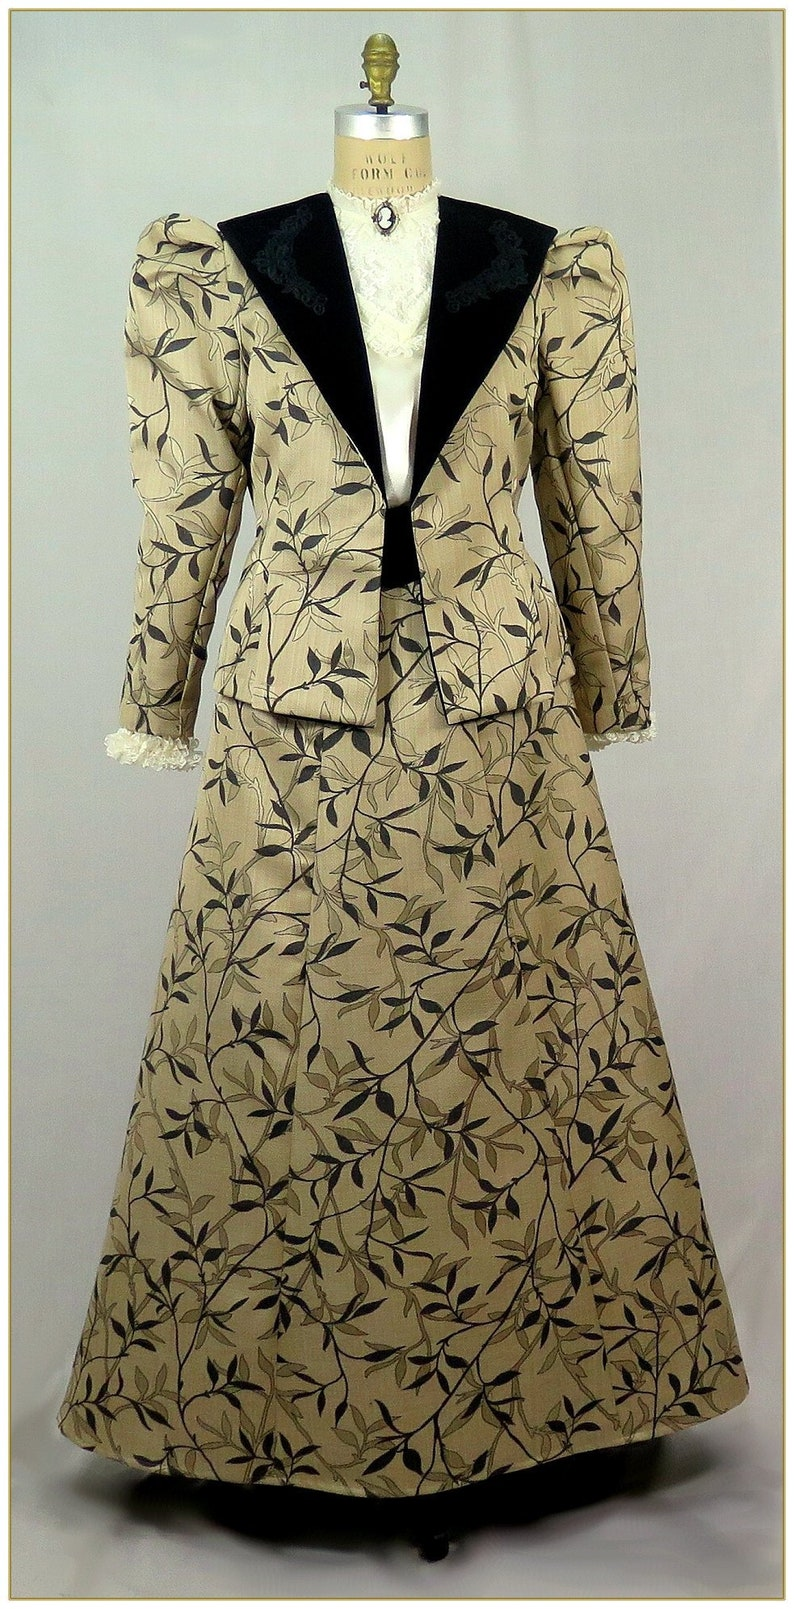 Old Fashioned Dresses | Old Dress Styles 1900-1910 Edwardian Victorian Leaf and Vine Jacket $92.00 AT vintagedancer.com